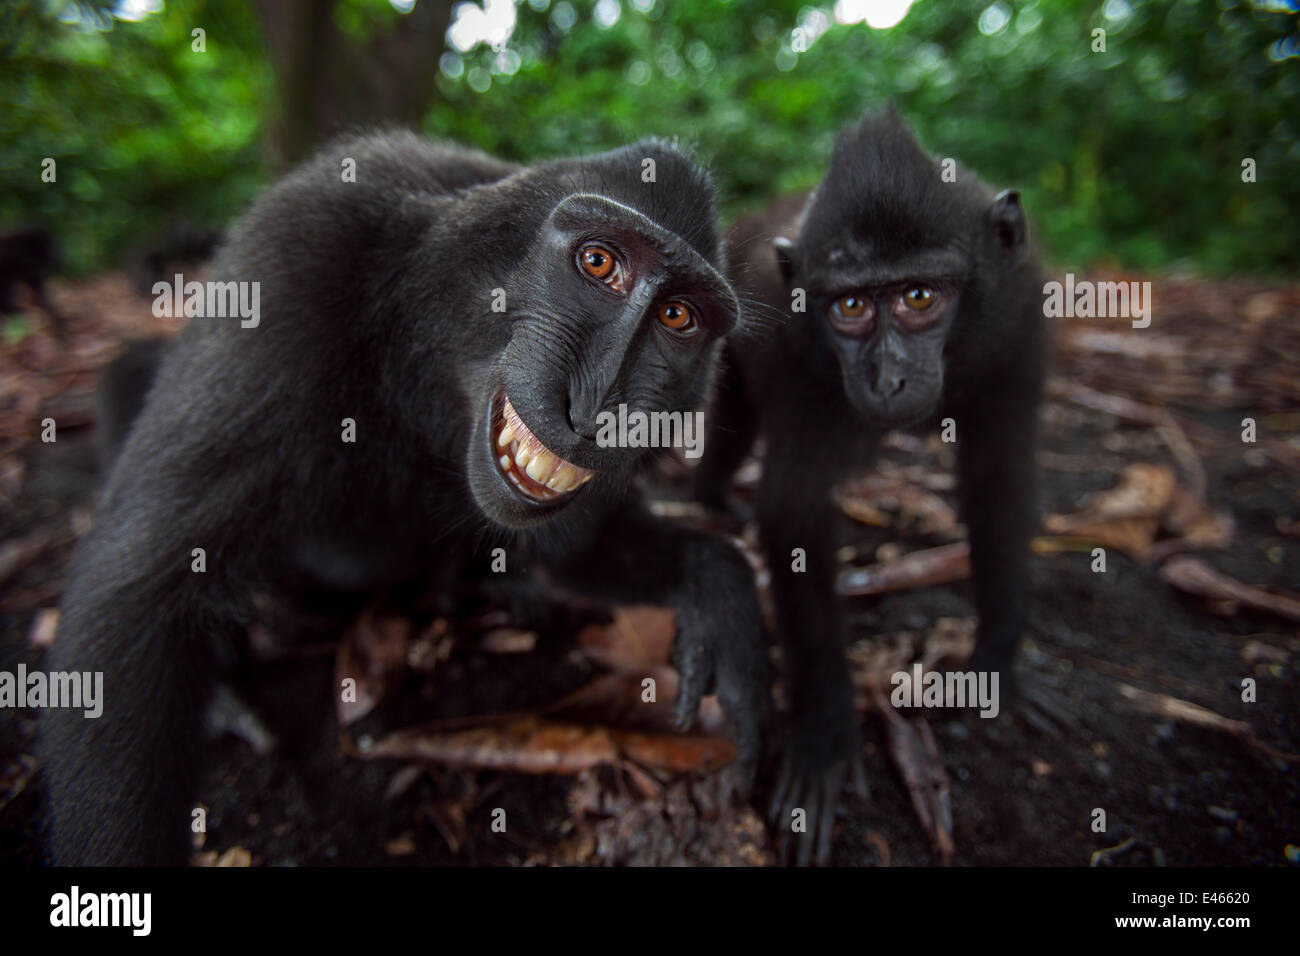 Celebes / Black crested macaque (Macaca nigra) two juveniles approaching with curiosity, one grimacing Tangkoko - Stock Image